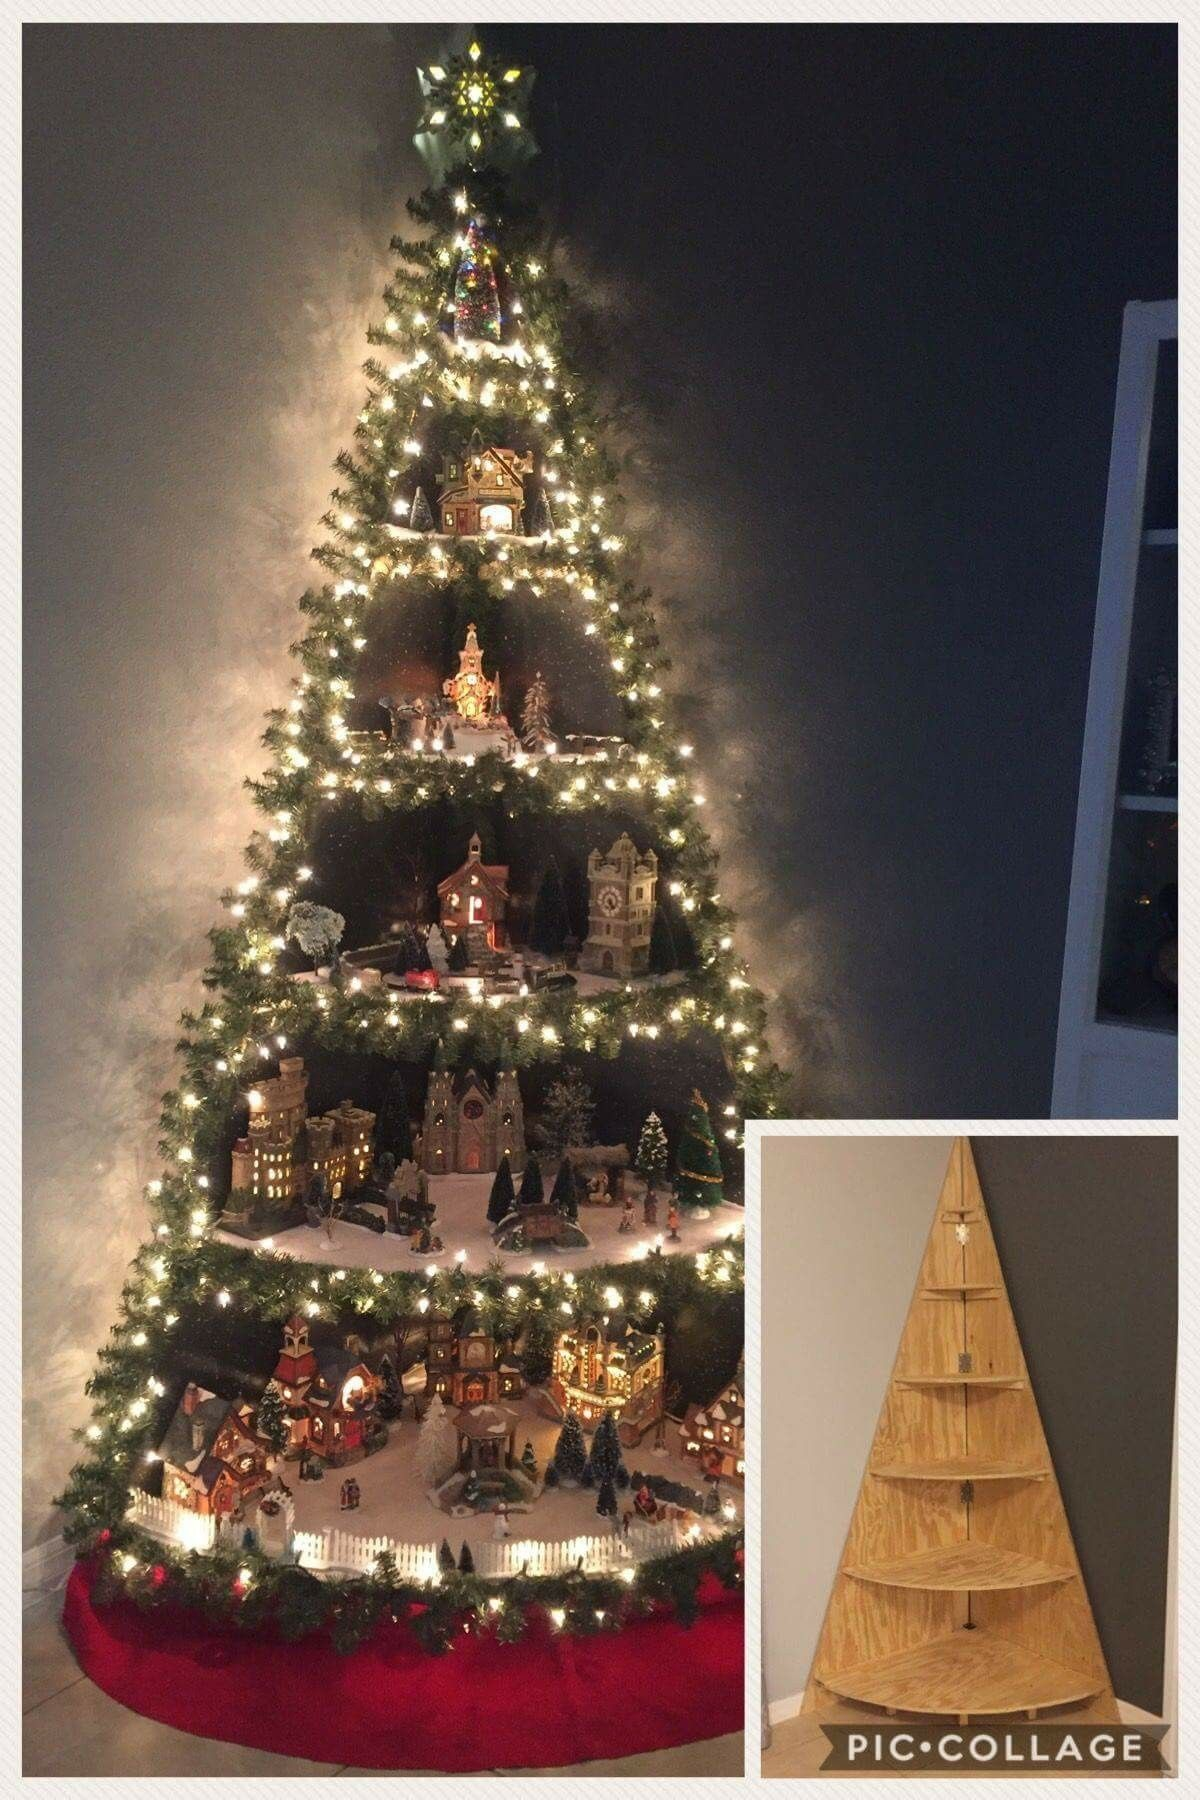 Such A Pretty Display For A Christmas Village Creative Christmas Trees Diy Christmas Tree Christmas Tree Village